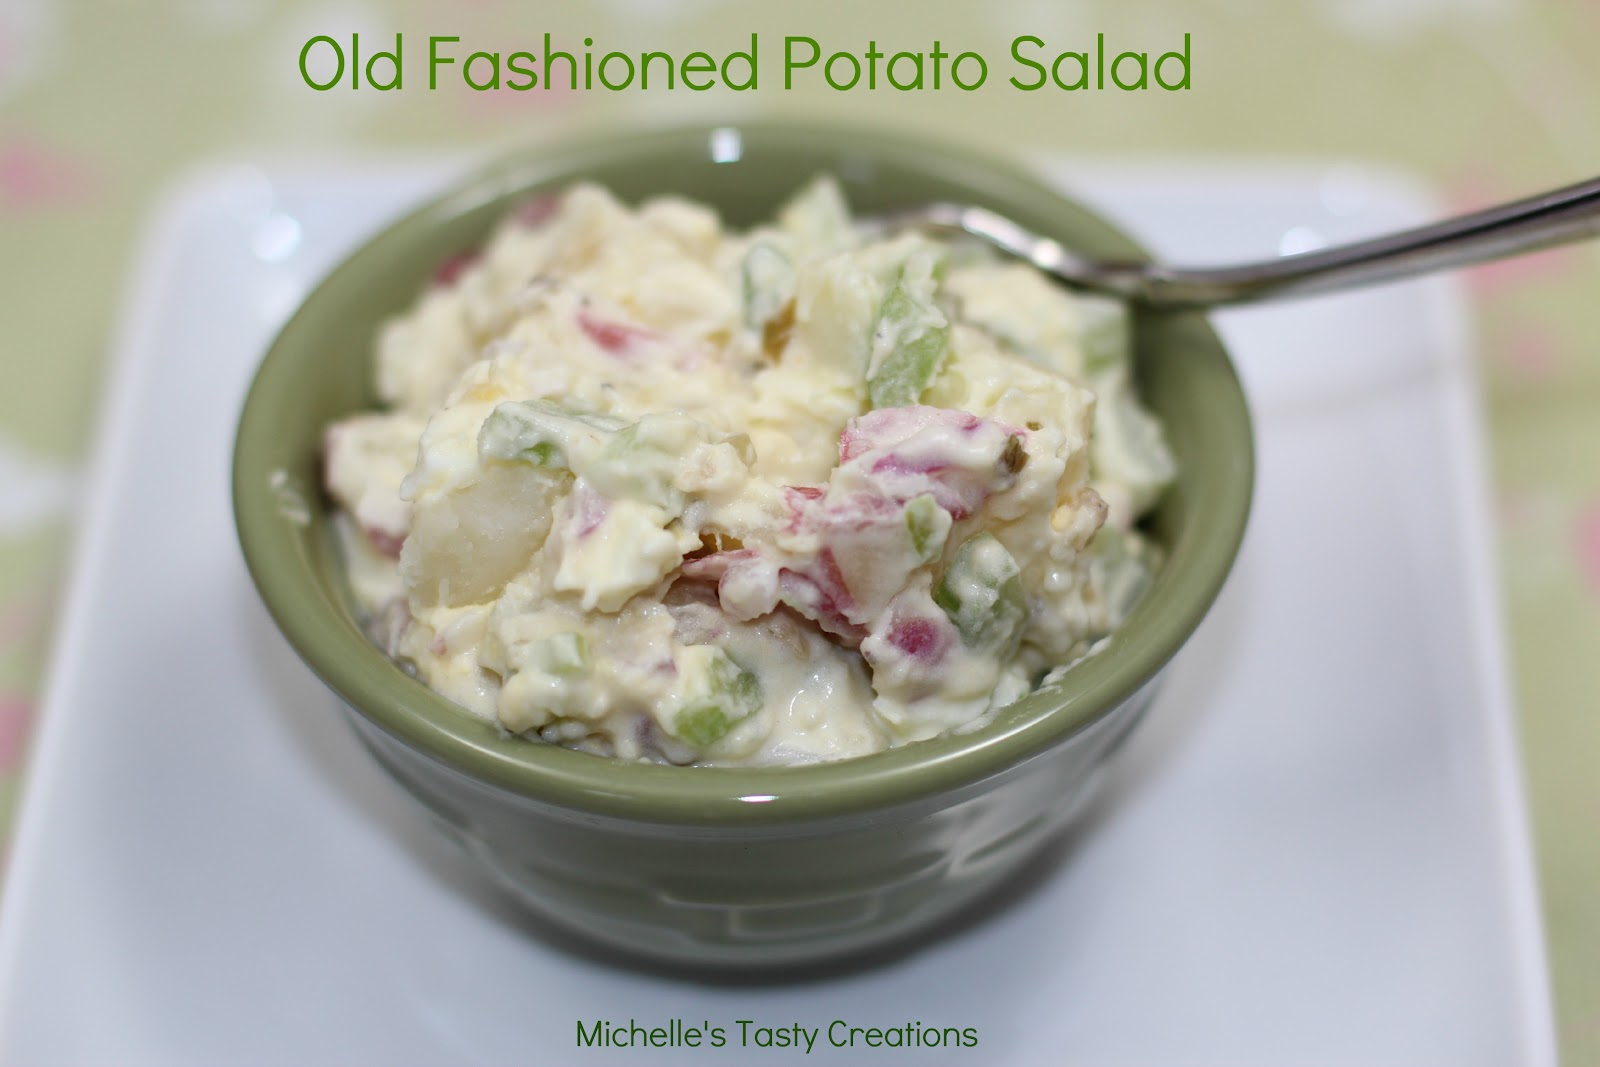 Best old fashioned potato salad recipe 95